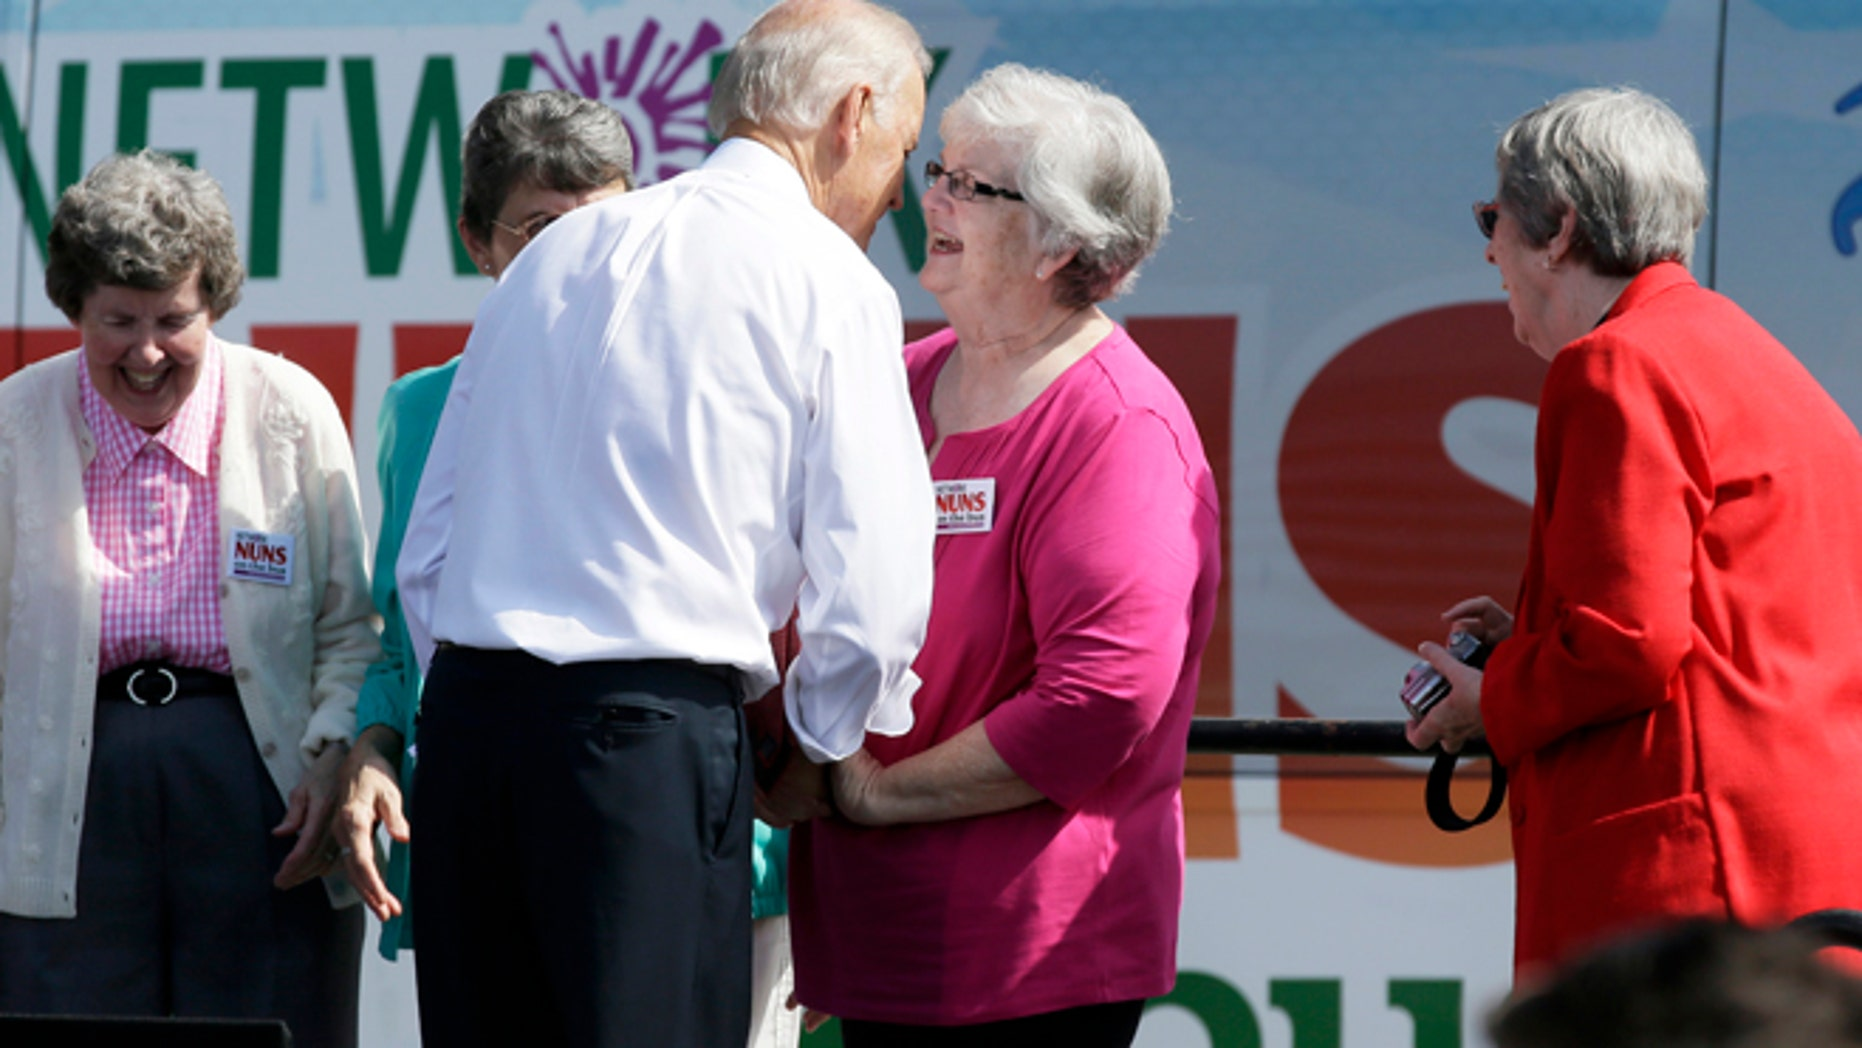 Sept. 17, 2014: Vice President Joe Biden speaks to a Catholic nun during the kickoff of the Nuns on the Bus at the Statehouse in Des Moines, Iowa. (AP)